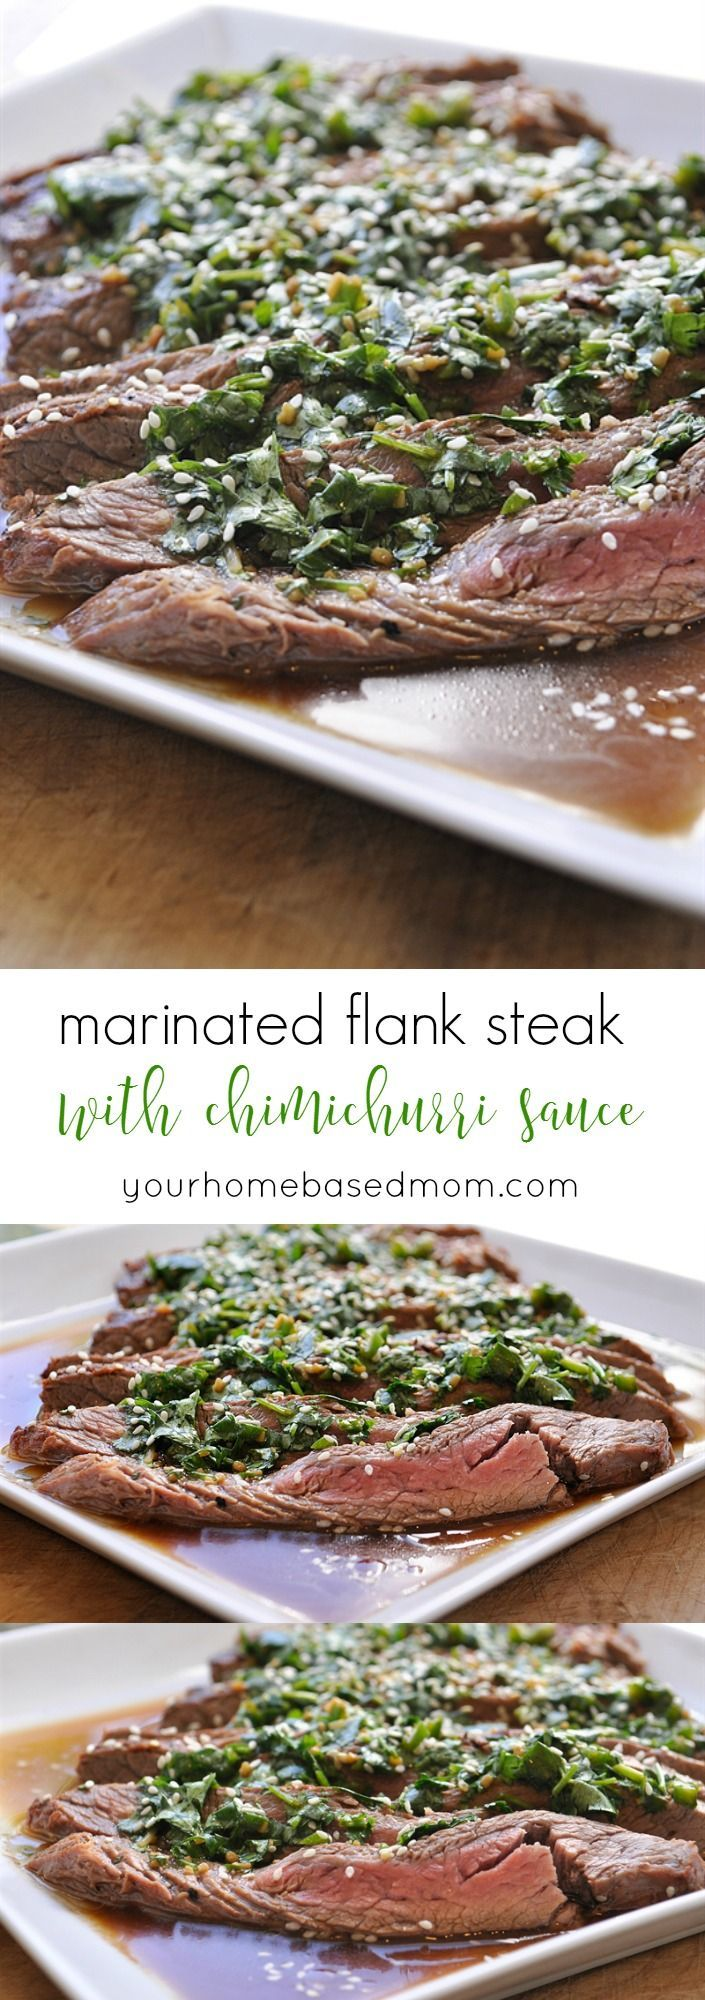 Marinated Flank Steak with Chimichurri Sauce Recipe - This grilled flank steak is always a hit and so easy to prepare.  Topping it with chimichurri sauce is perfection.